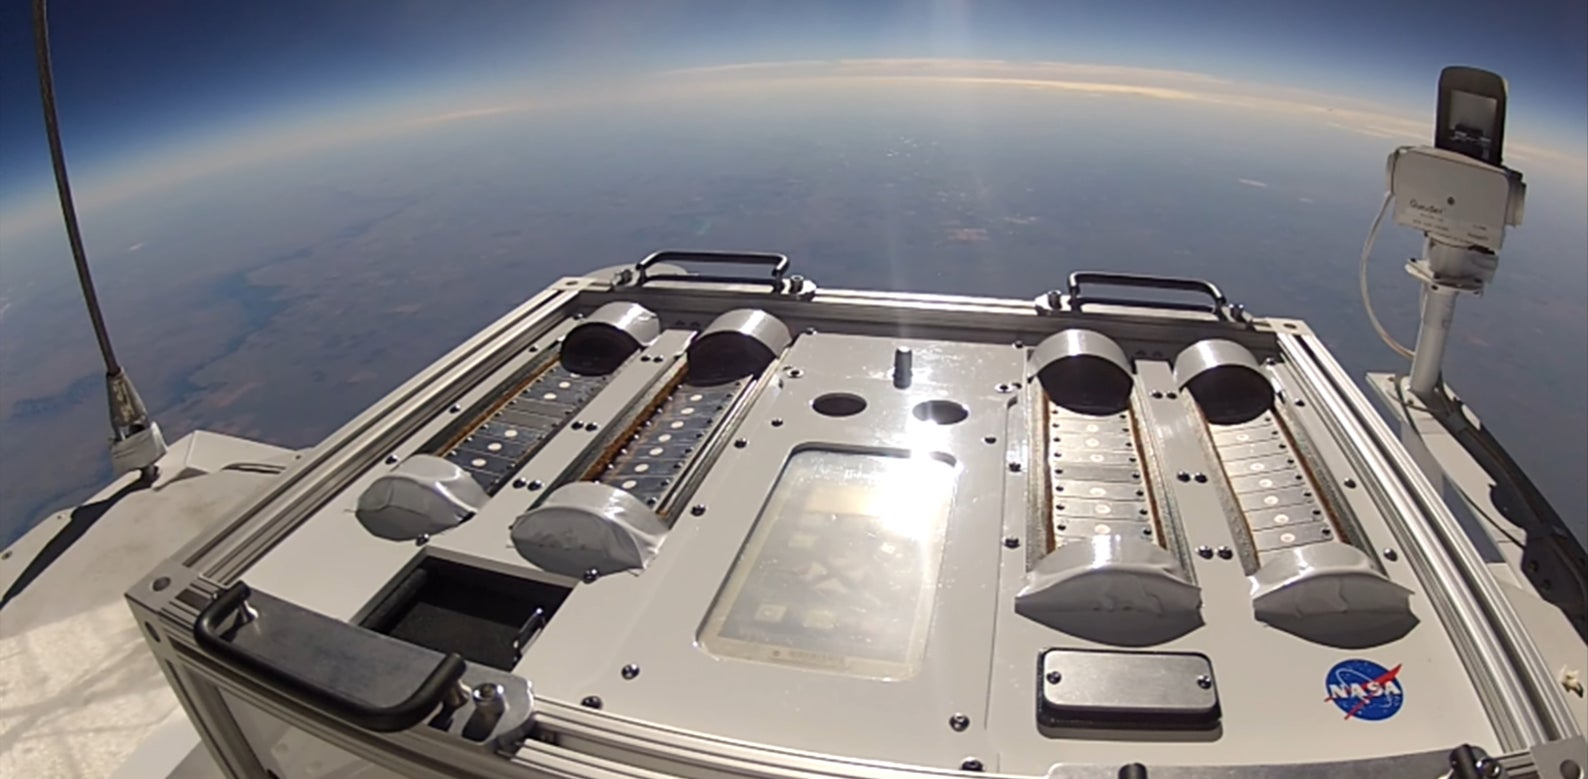 NASA Is Sending Bacteria to the Edge of Space to See if They Can Hitchhike to Mars